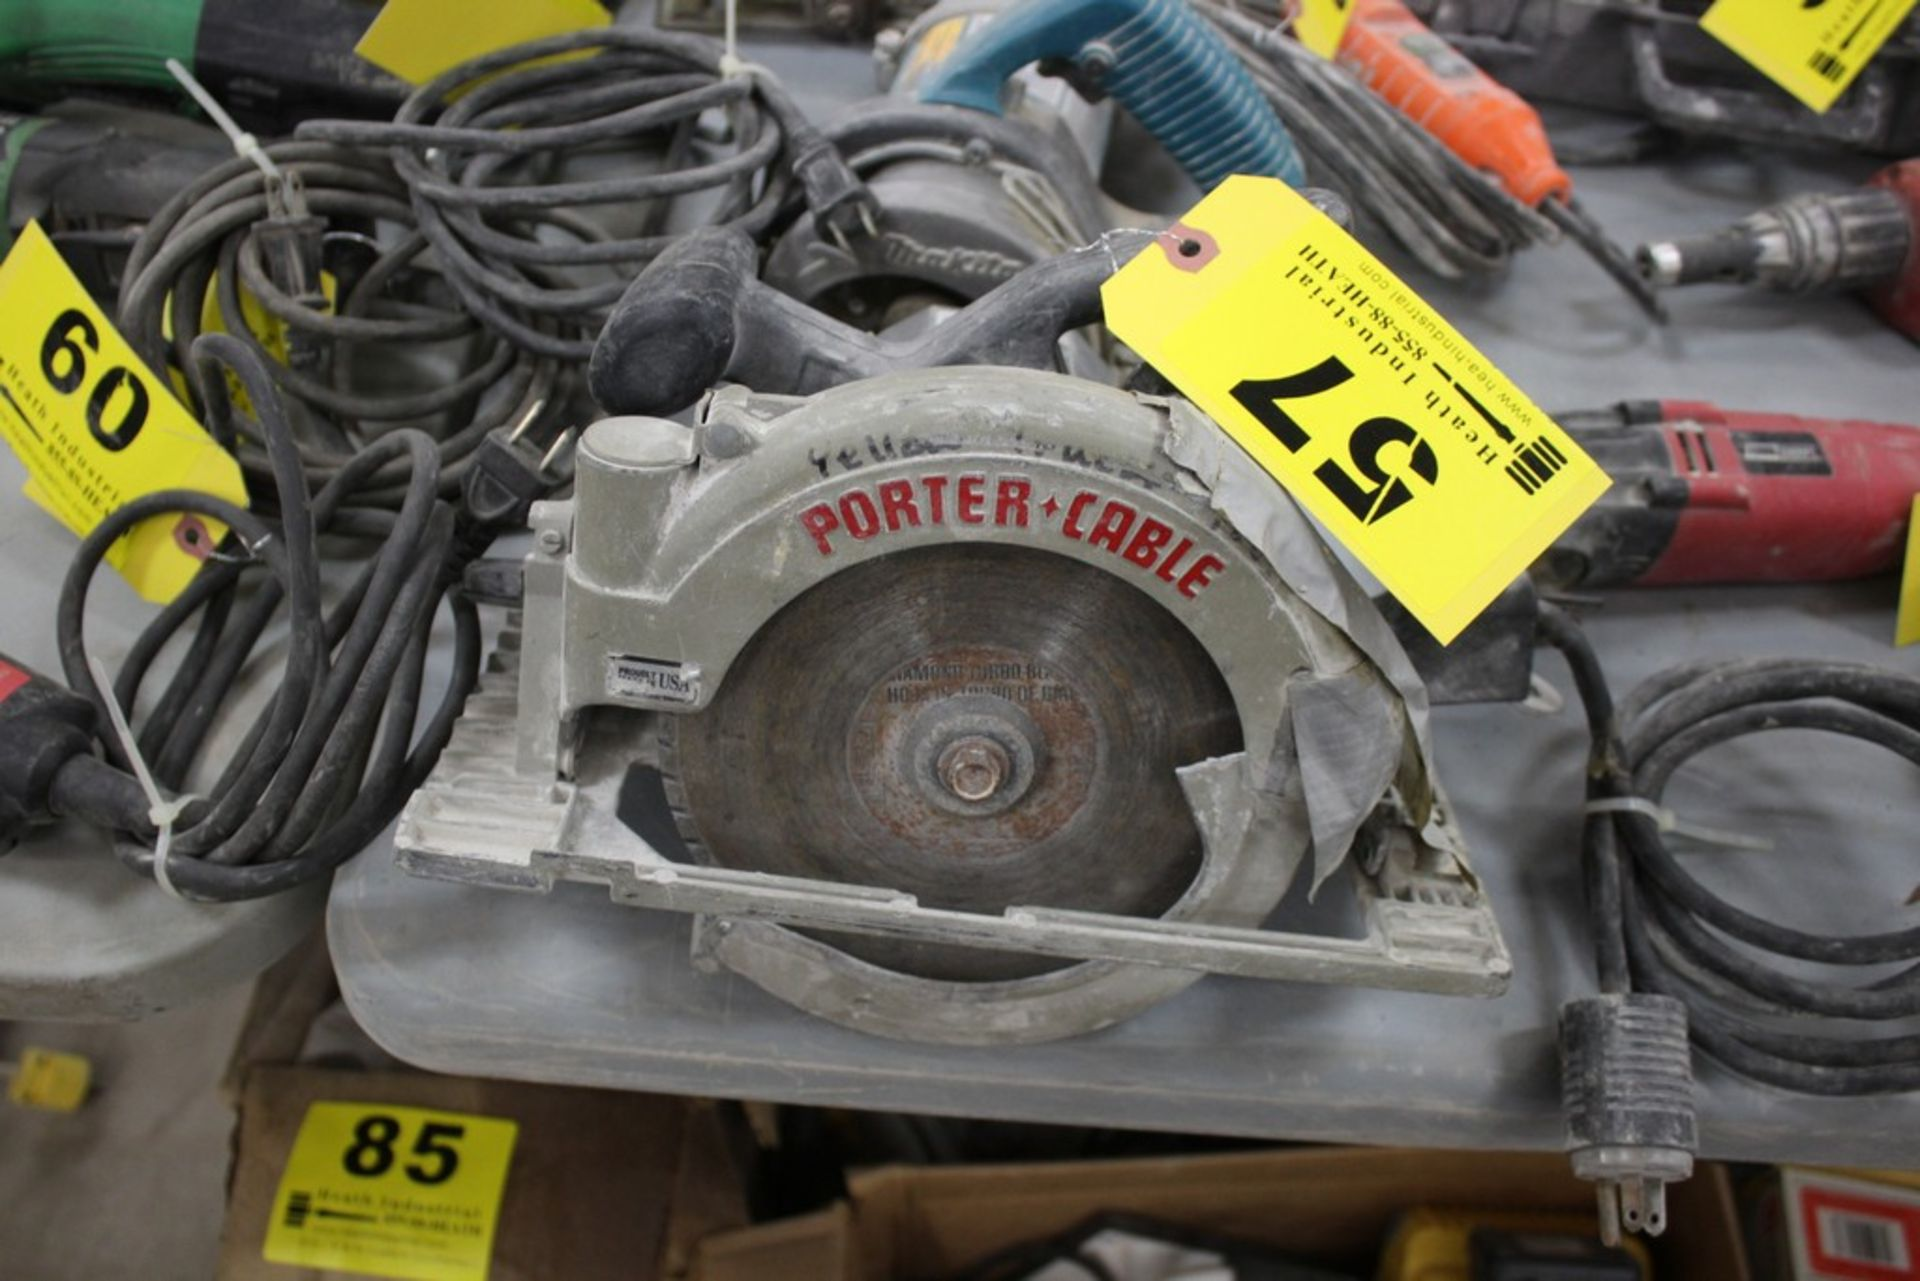 """Lot 57 - PORTER CABLE MODEL 743 7 1/4"""" HEAVY DUTY CIRCULAR SAW"""